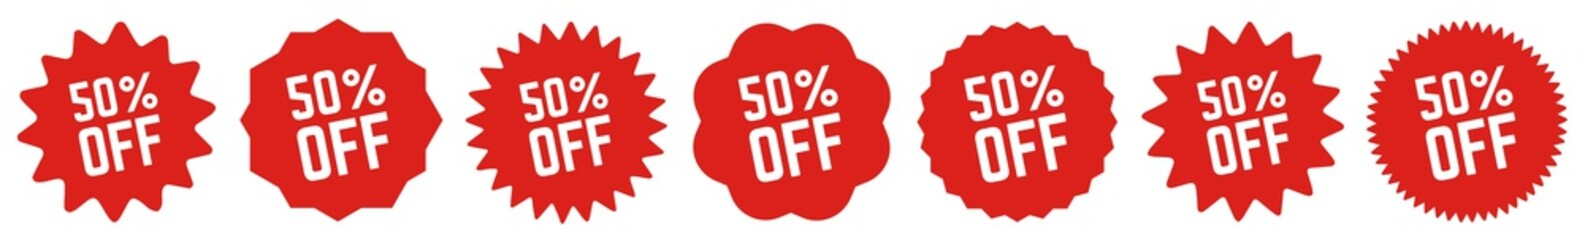 50 Percent OFF Discount Tag Red | Special Offer Icon | Sale Sticker | Deal Label | Variations